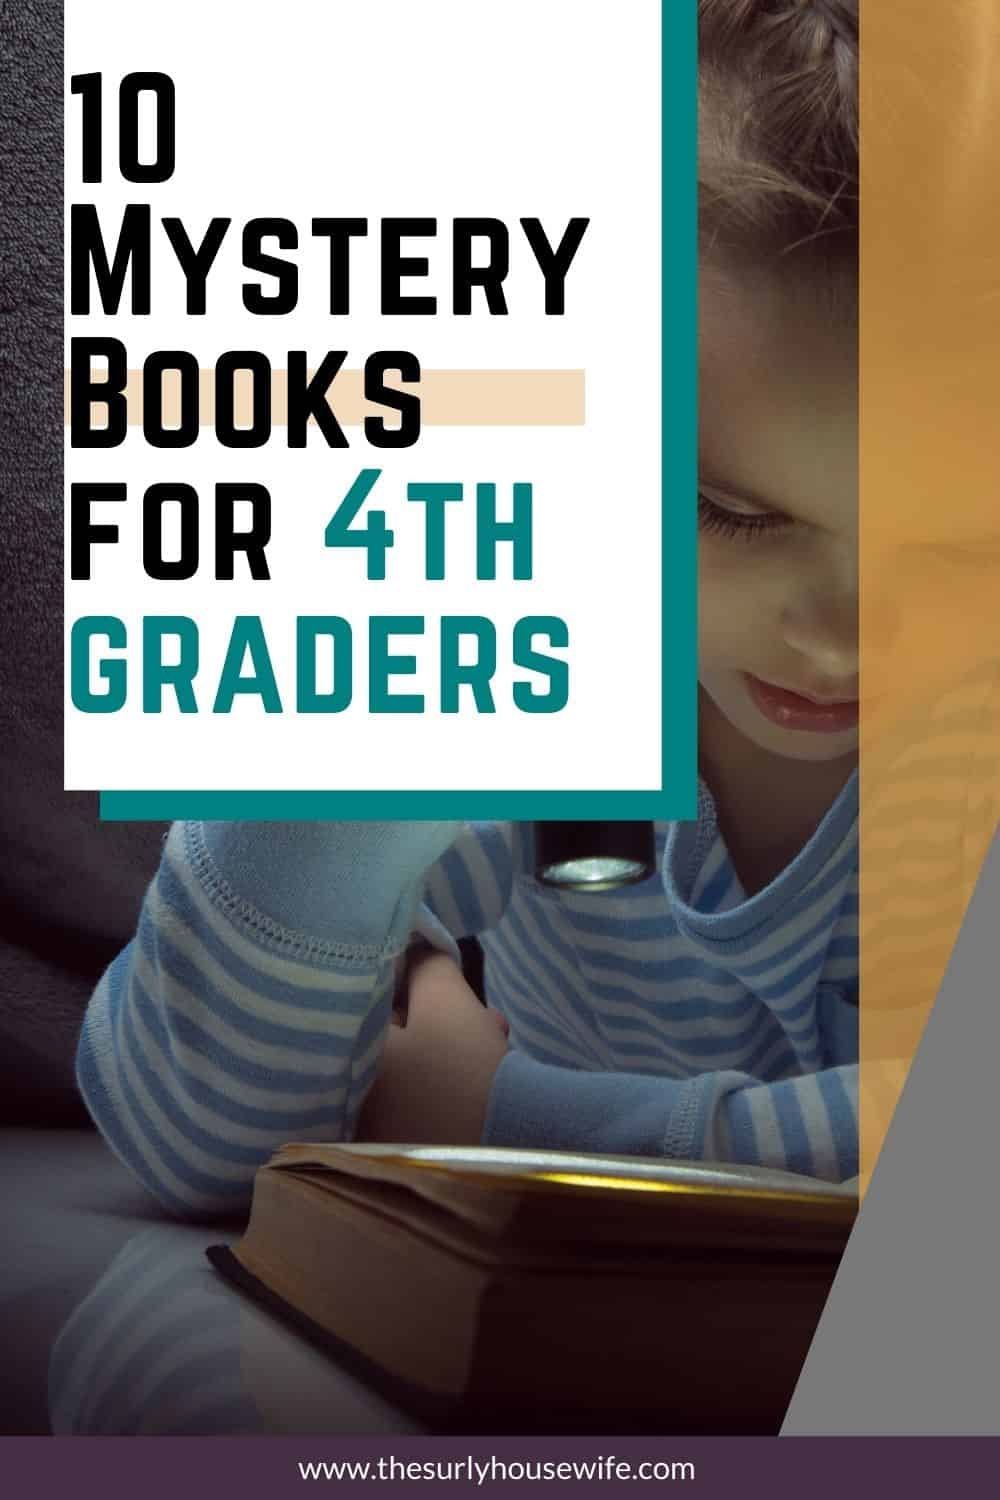 Looking for some of the best books for 4th graders? Don't miss this post for 10 mystery books for kids.